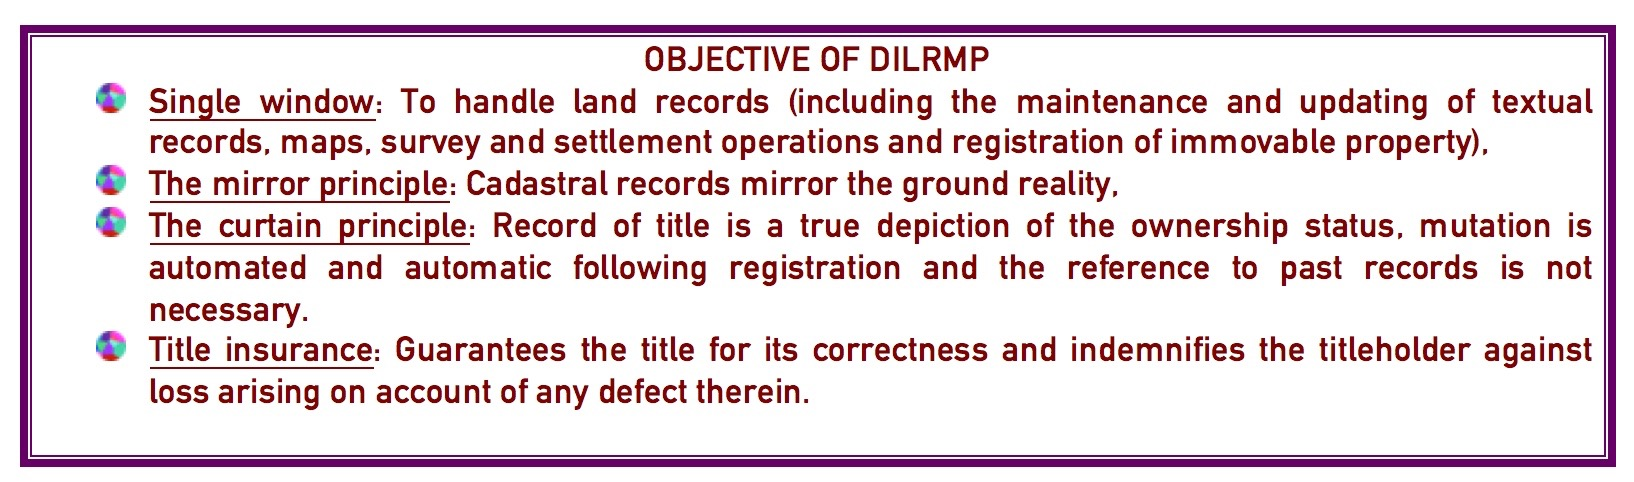 Objective of Digitisation of Land Record